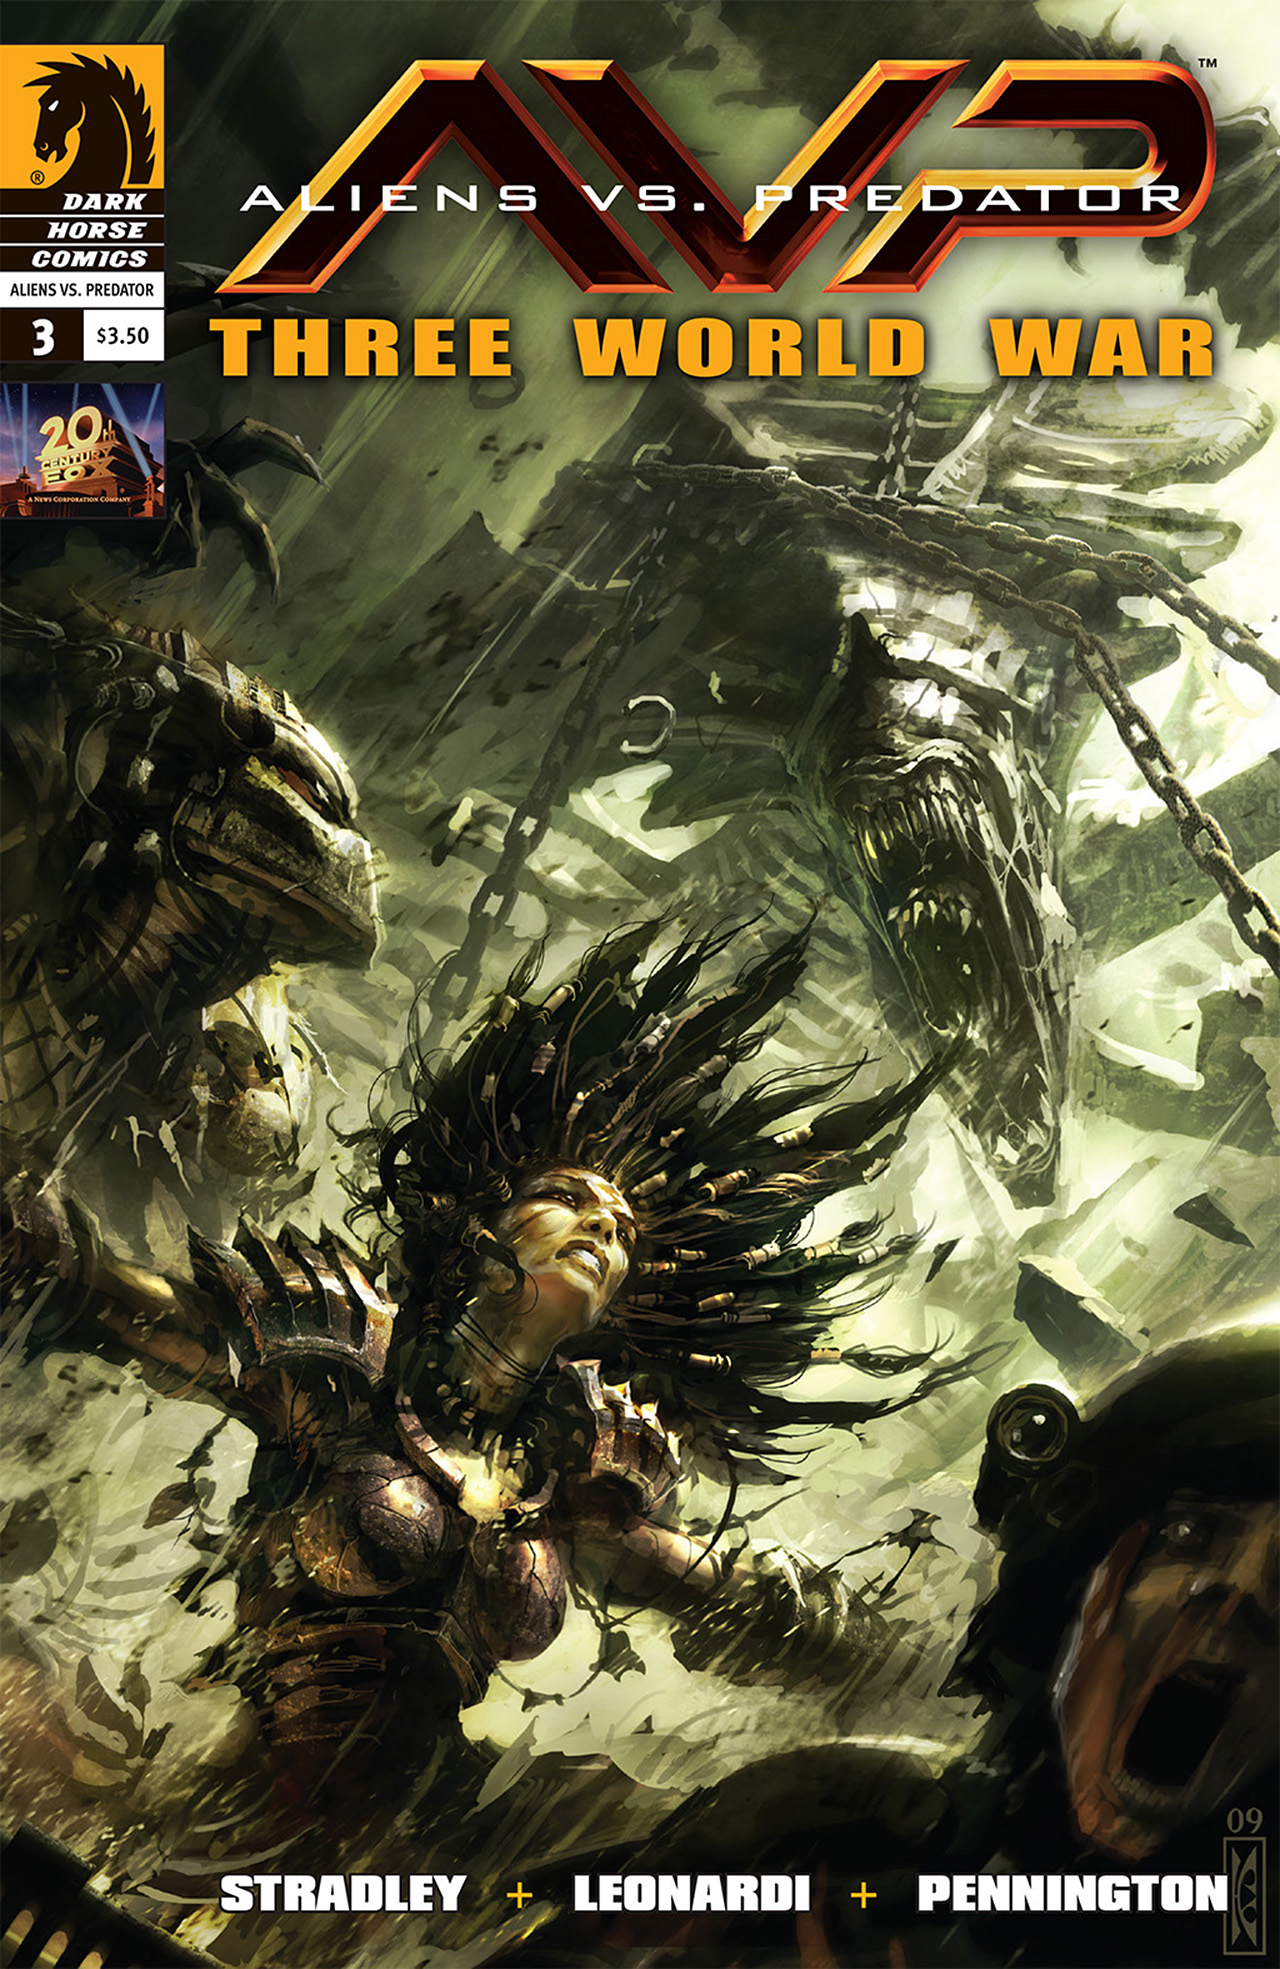 Aliens vs. Predator: Three World War 3 Page 1